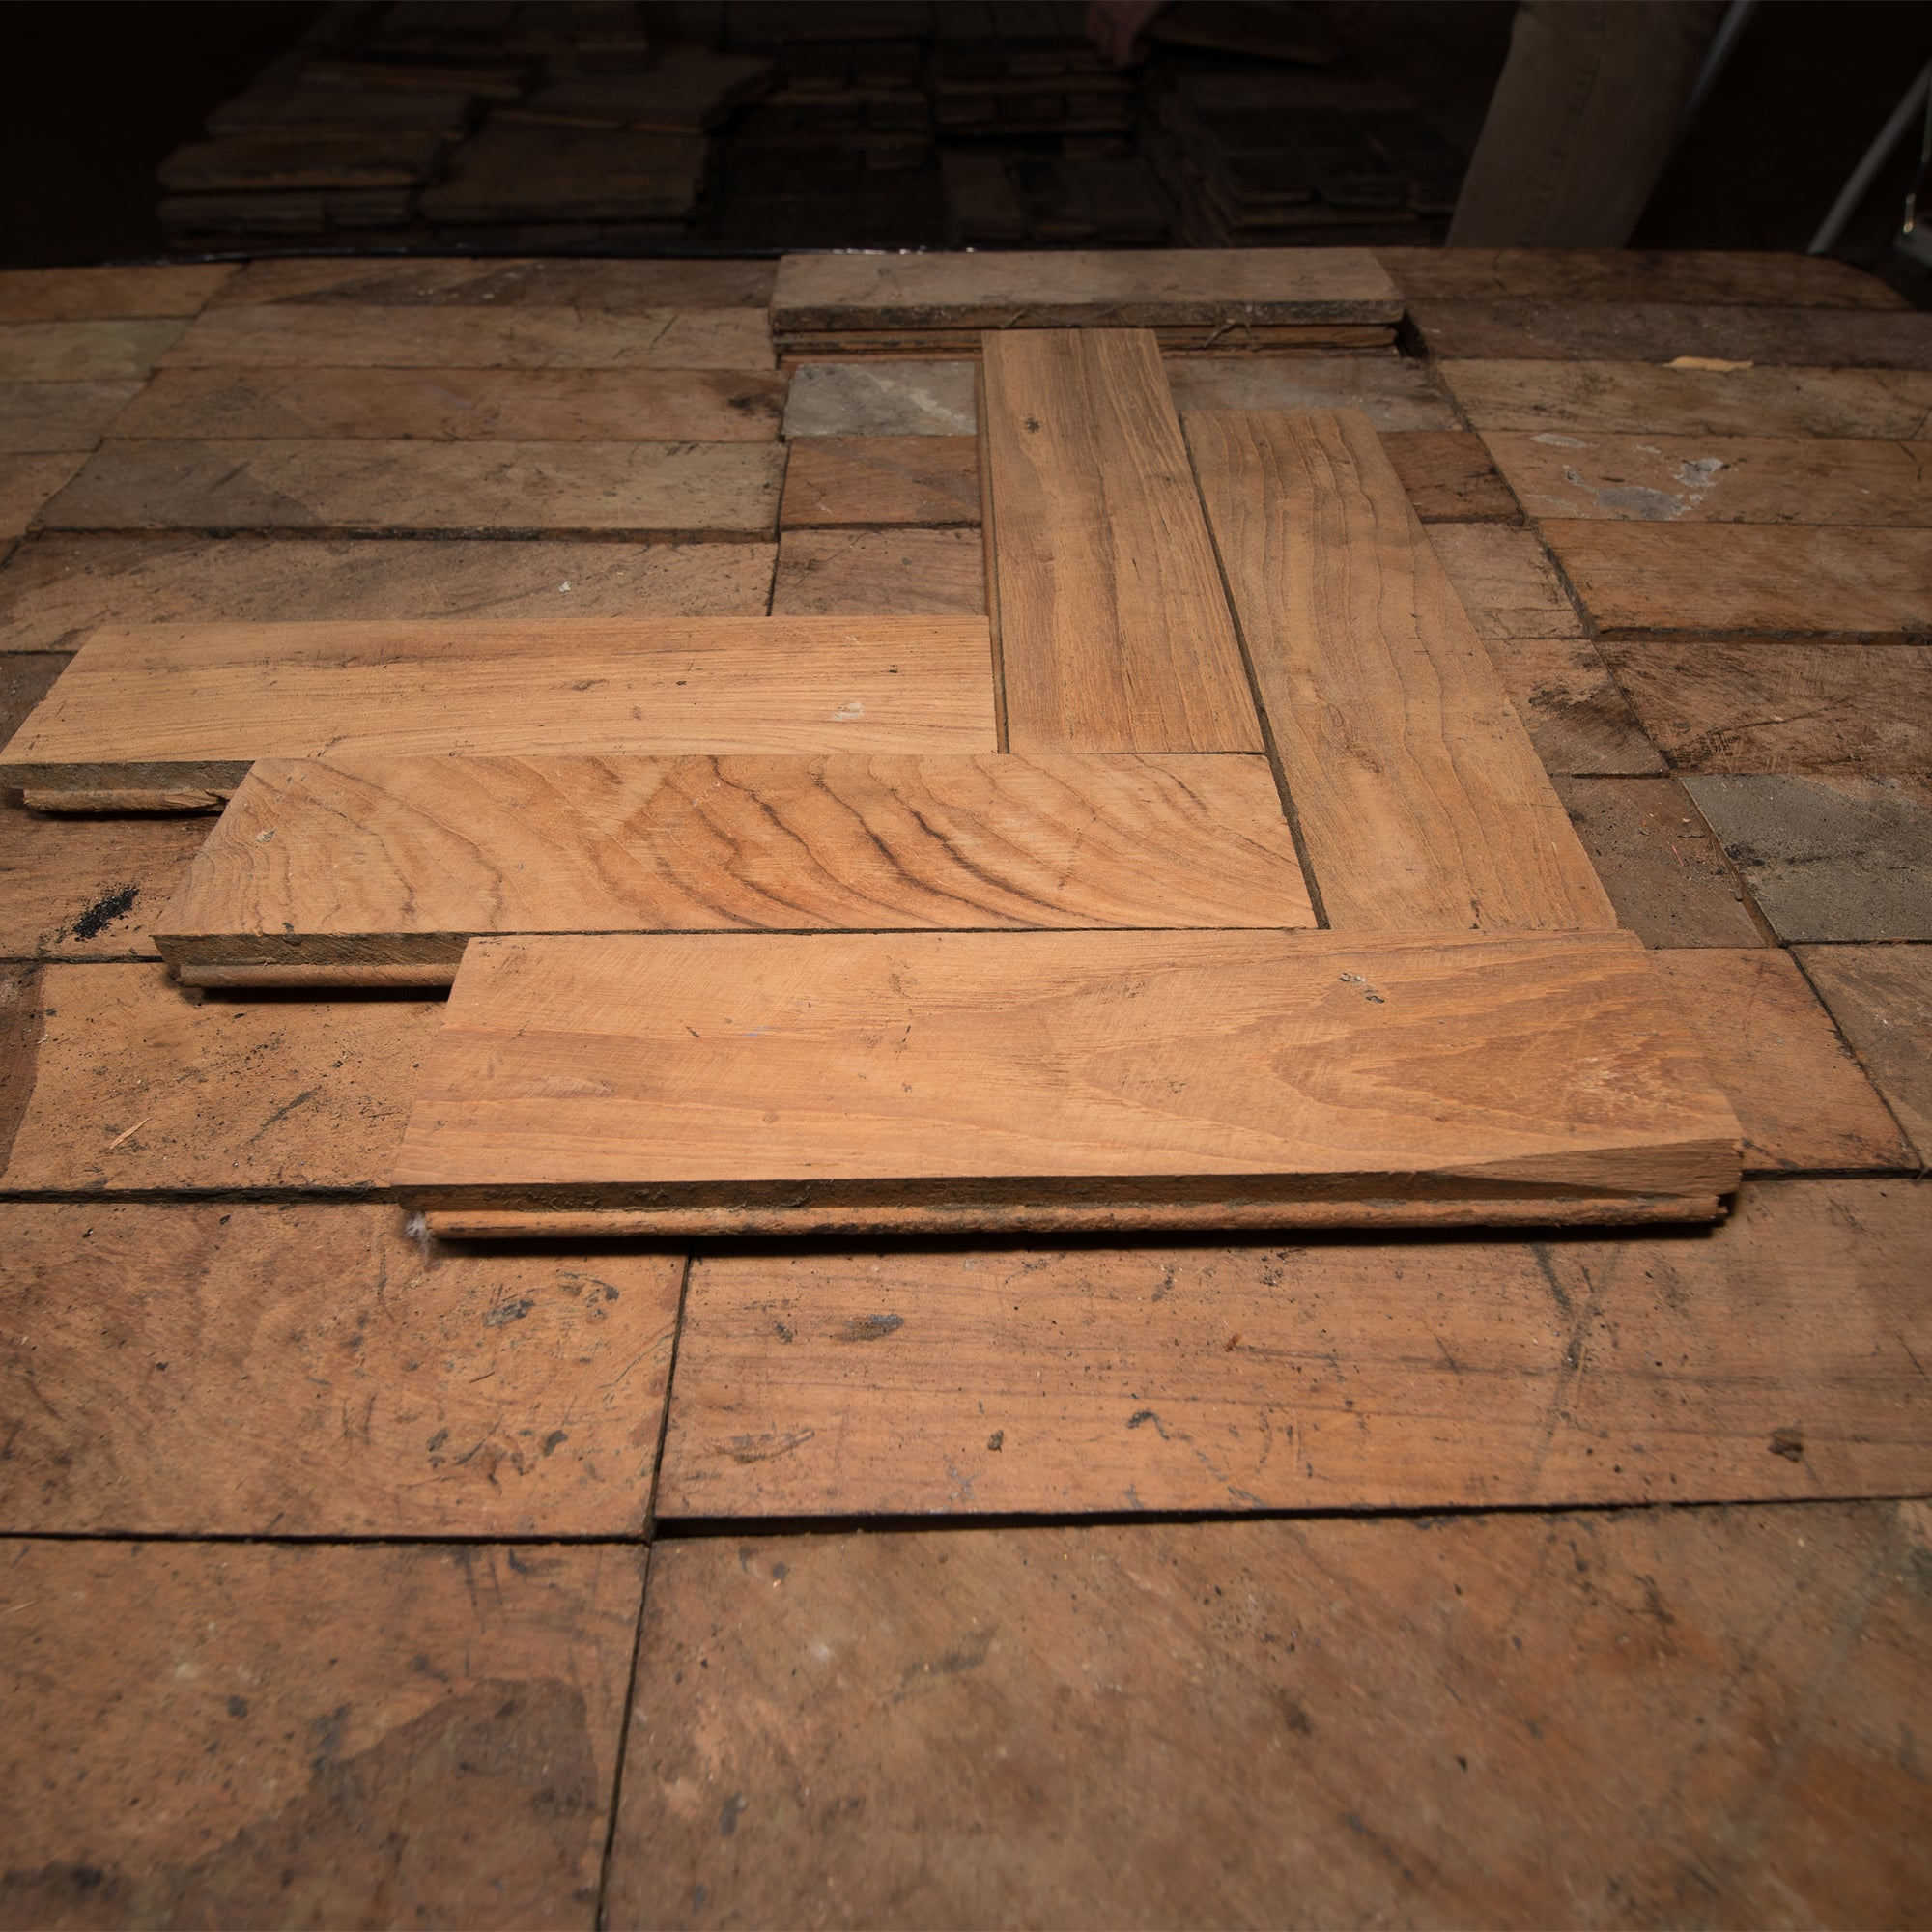 Antique Reclaimed Teak Parquet Flooring 14m² | The Architectural Forum